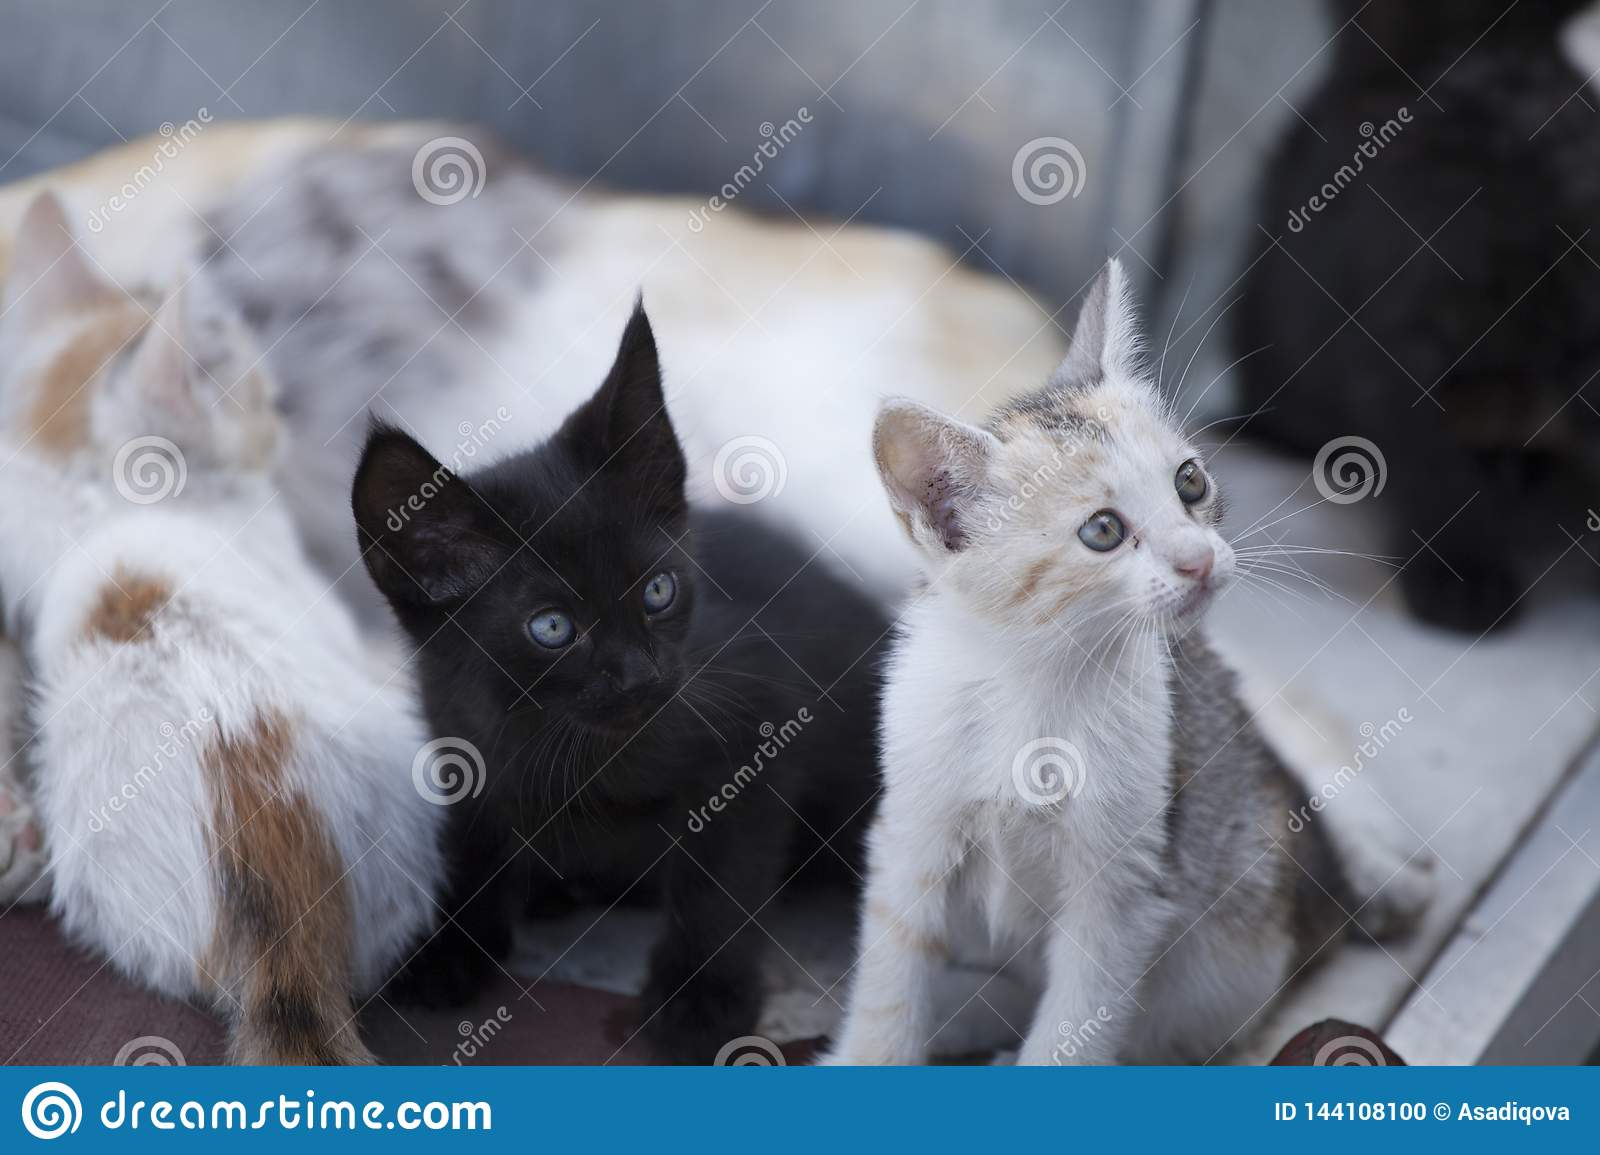 Many Cats Sitting In A Row Cute Cats Stock Photo Image Of Home Background 144108100